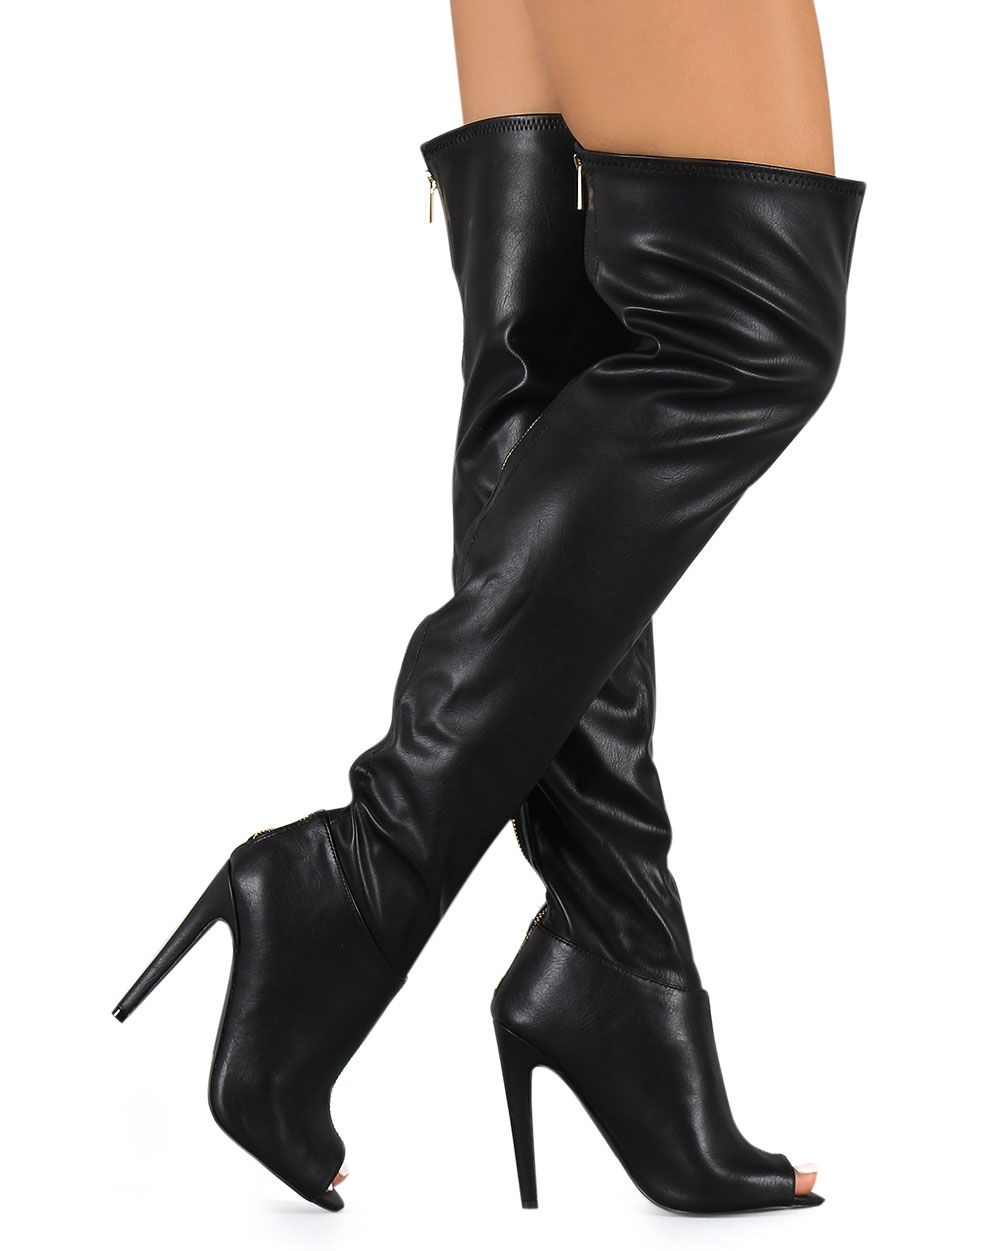 78ae62cf479b New-Women-Qupid-Interest-118-Leatherette-Peep-Toe-Thigh-High-Zip-Stiletto- Boot